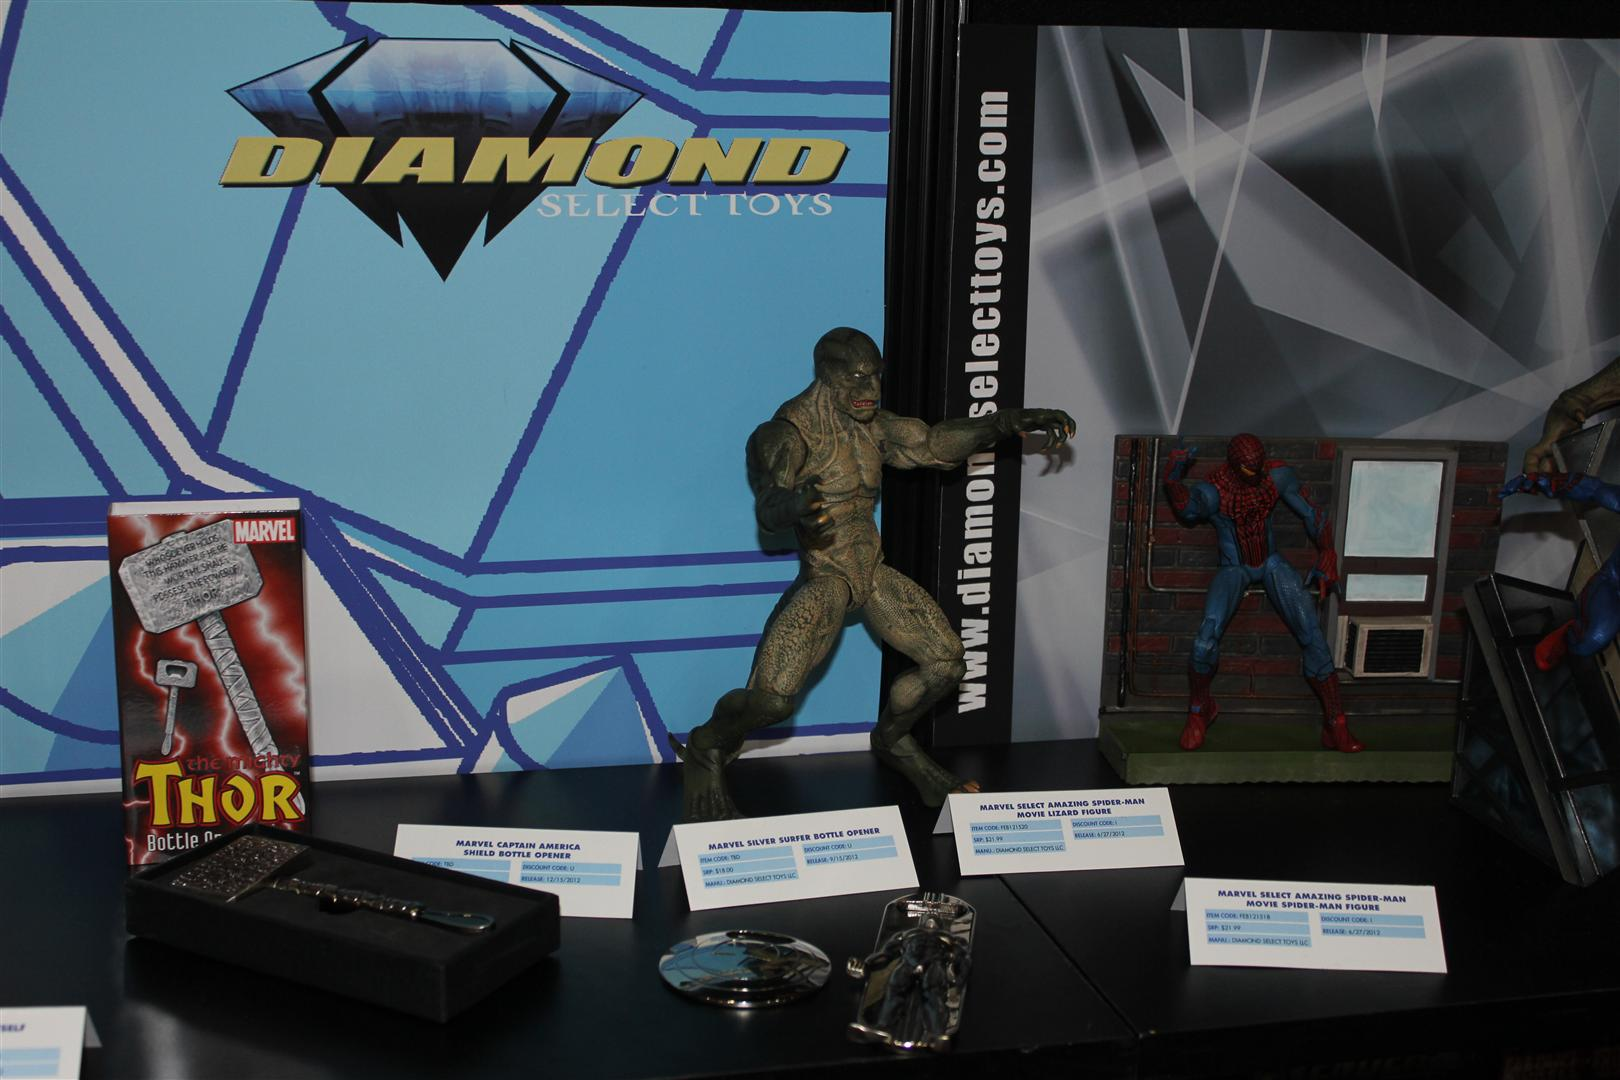 NY Toy Fair 2012 – Diamond Select Toys images and release dates